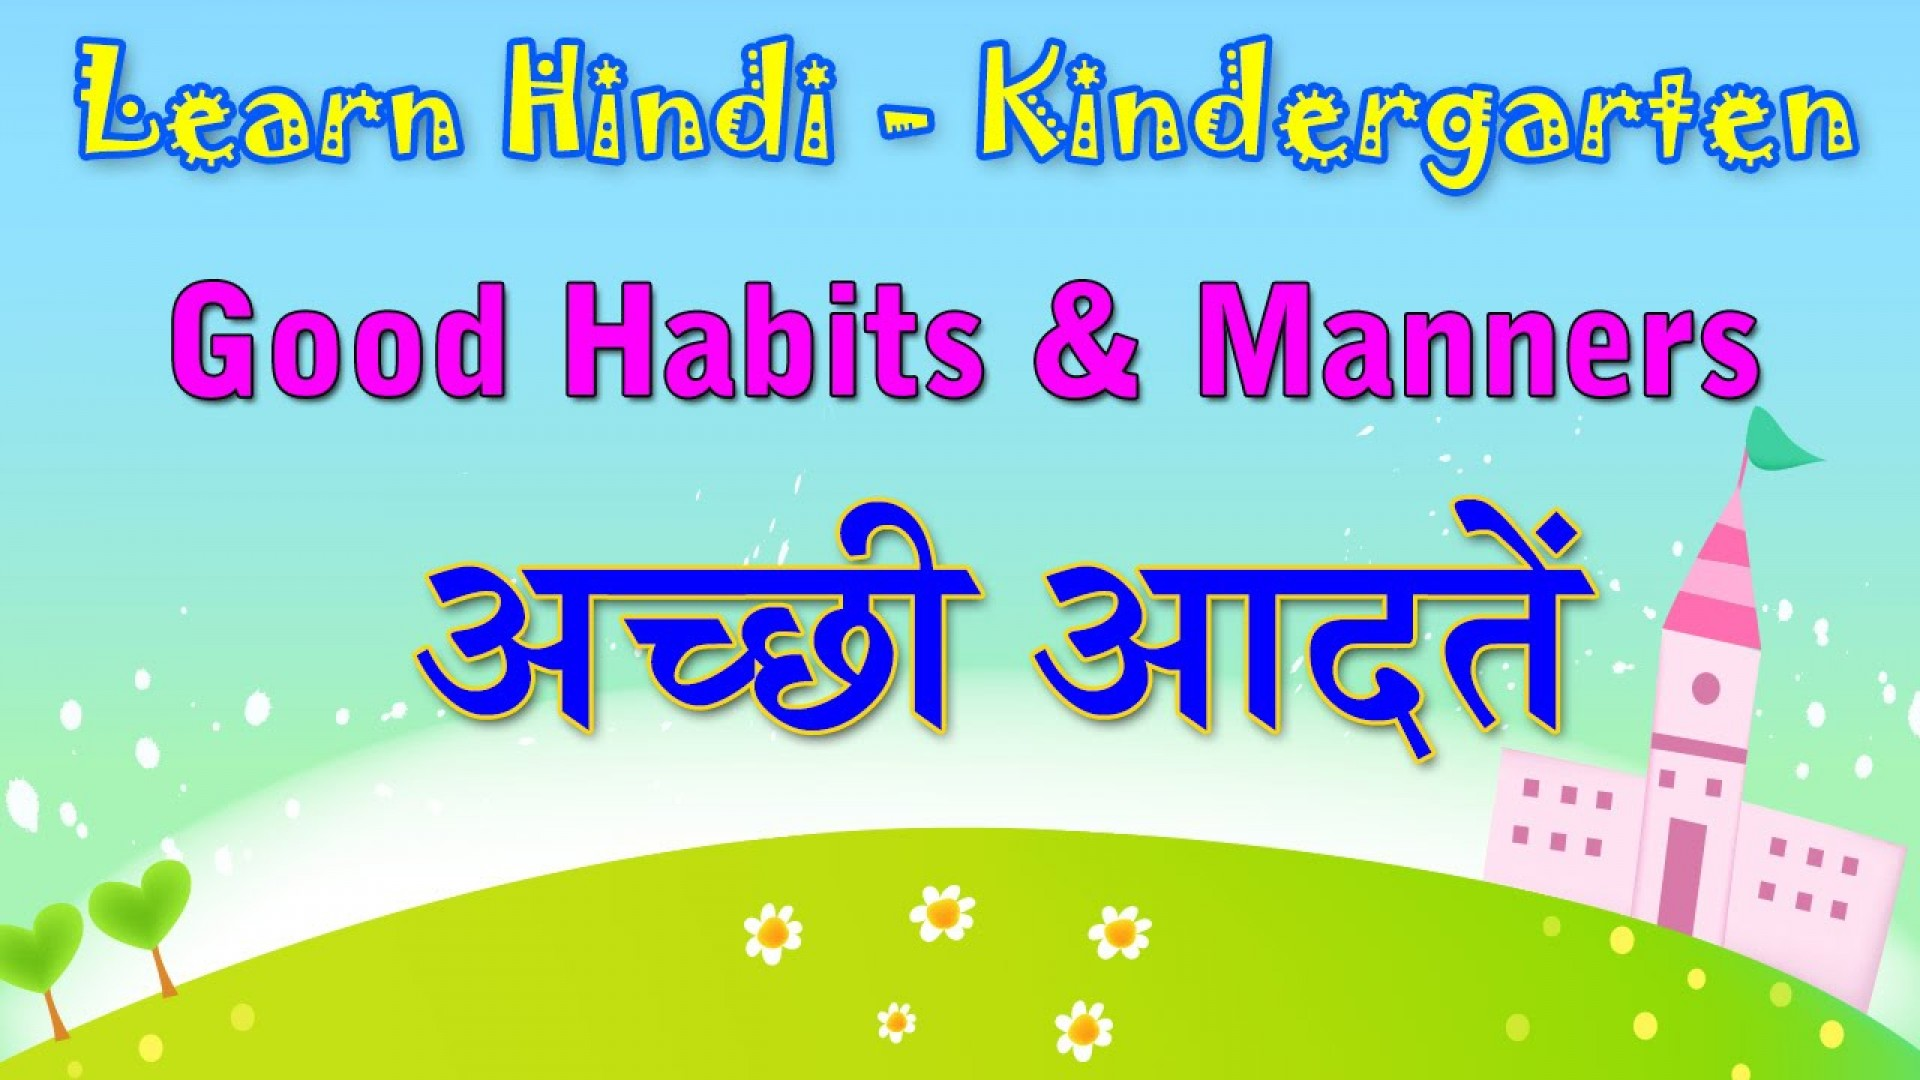 004 Essay Example Good Habits In Hindi Exceptional Food Wikipedia 1920